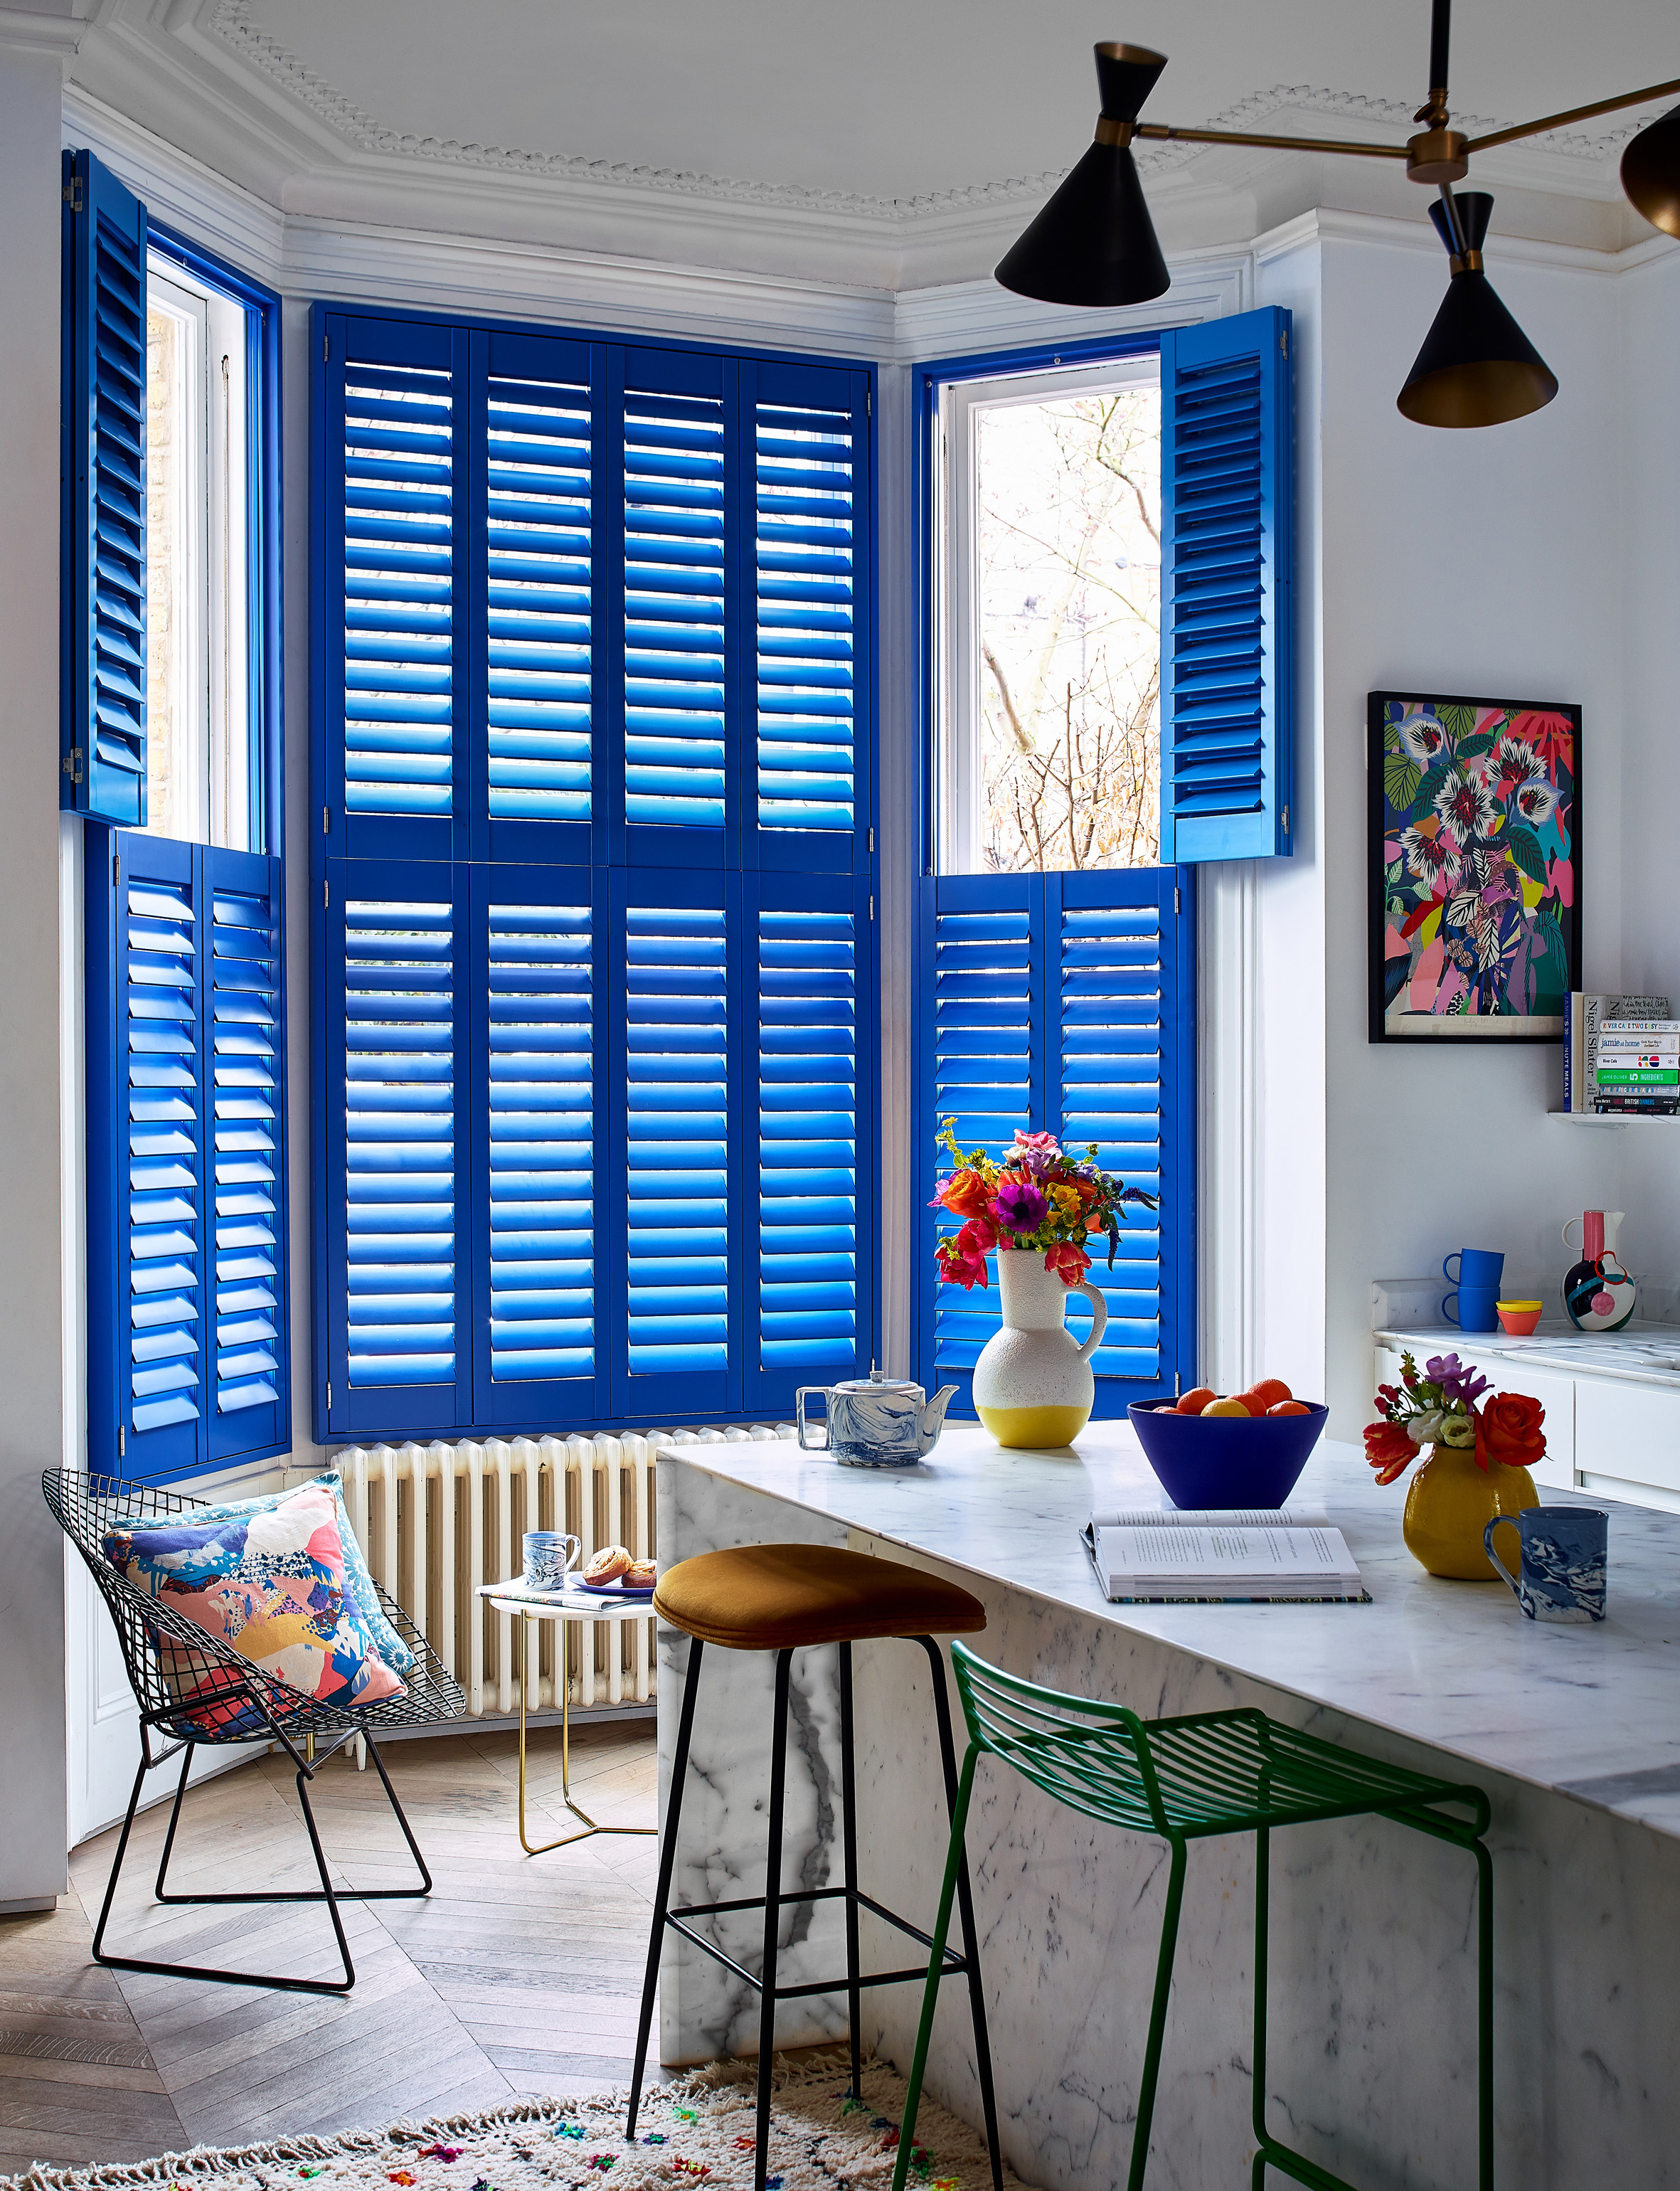 Tier-on-Tier coloured shutters in custom colour from £499 plus £75 per panel for colour, Hillarys (Hillarys/PA)